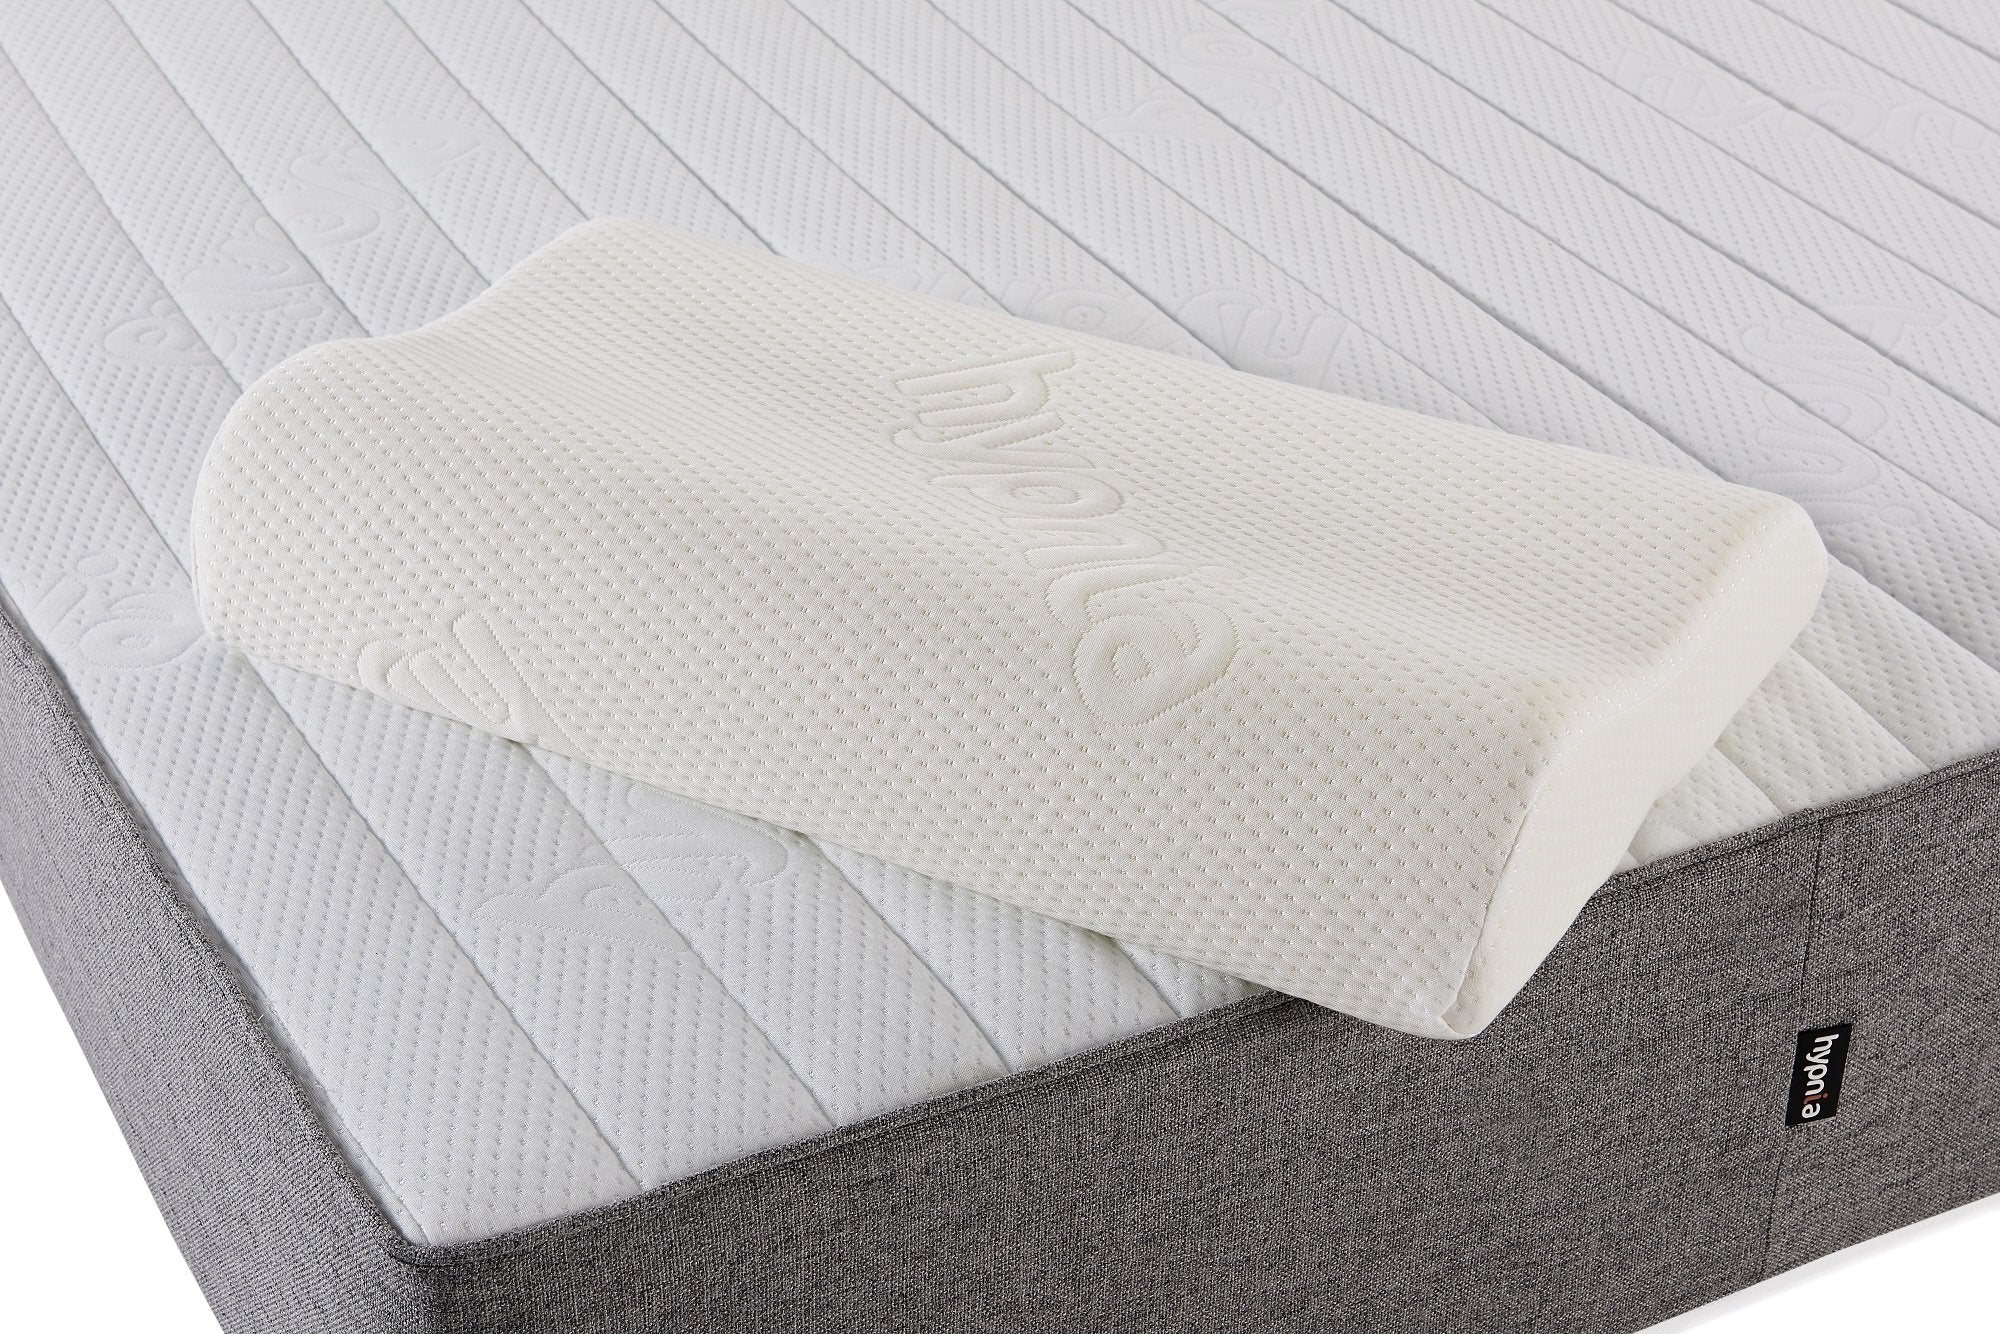 Pillow - Memory Foam Pillow